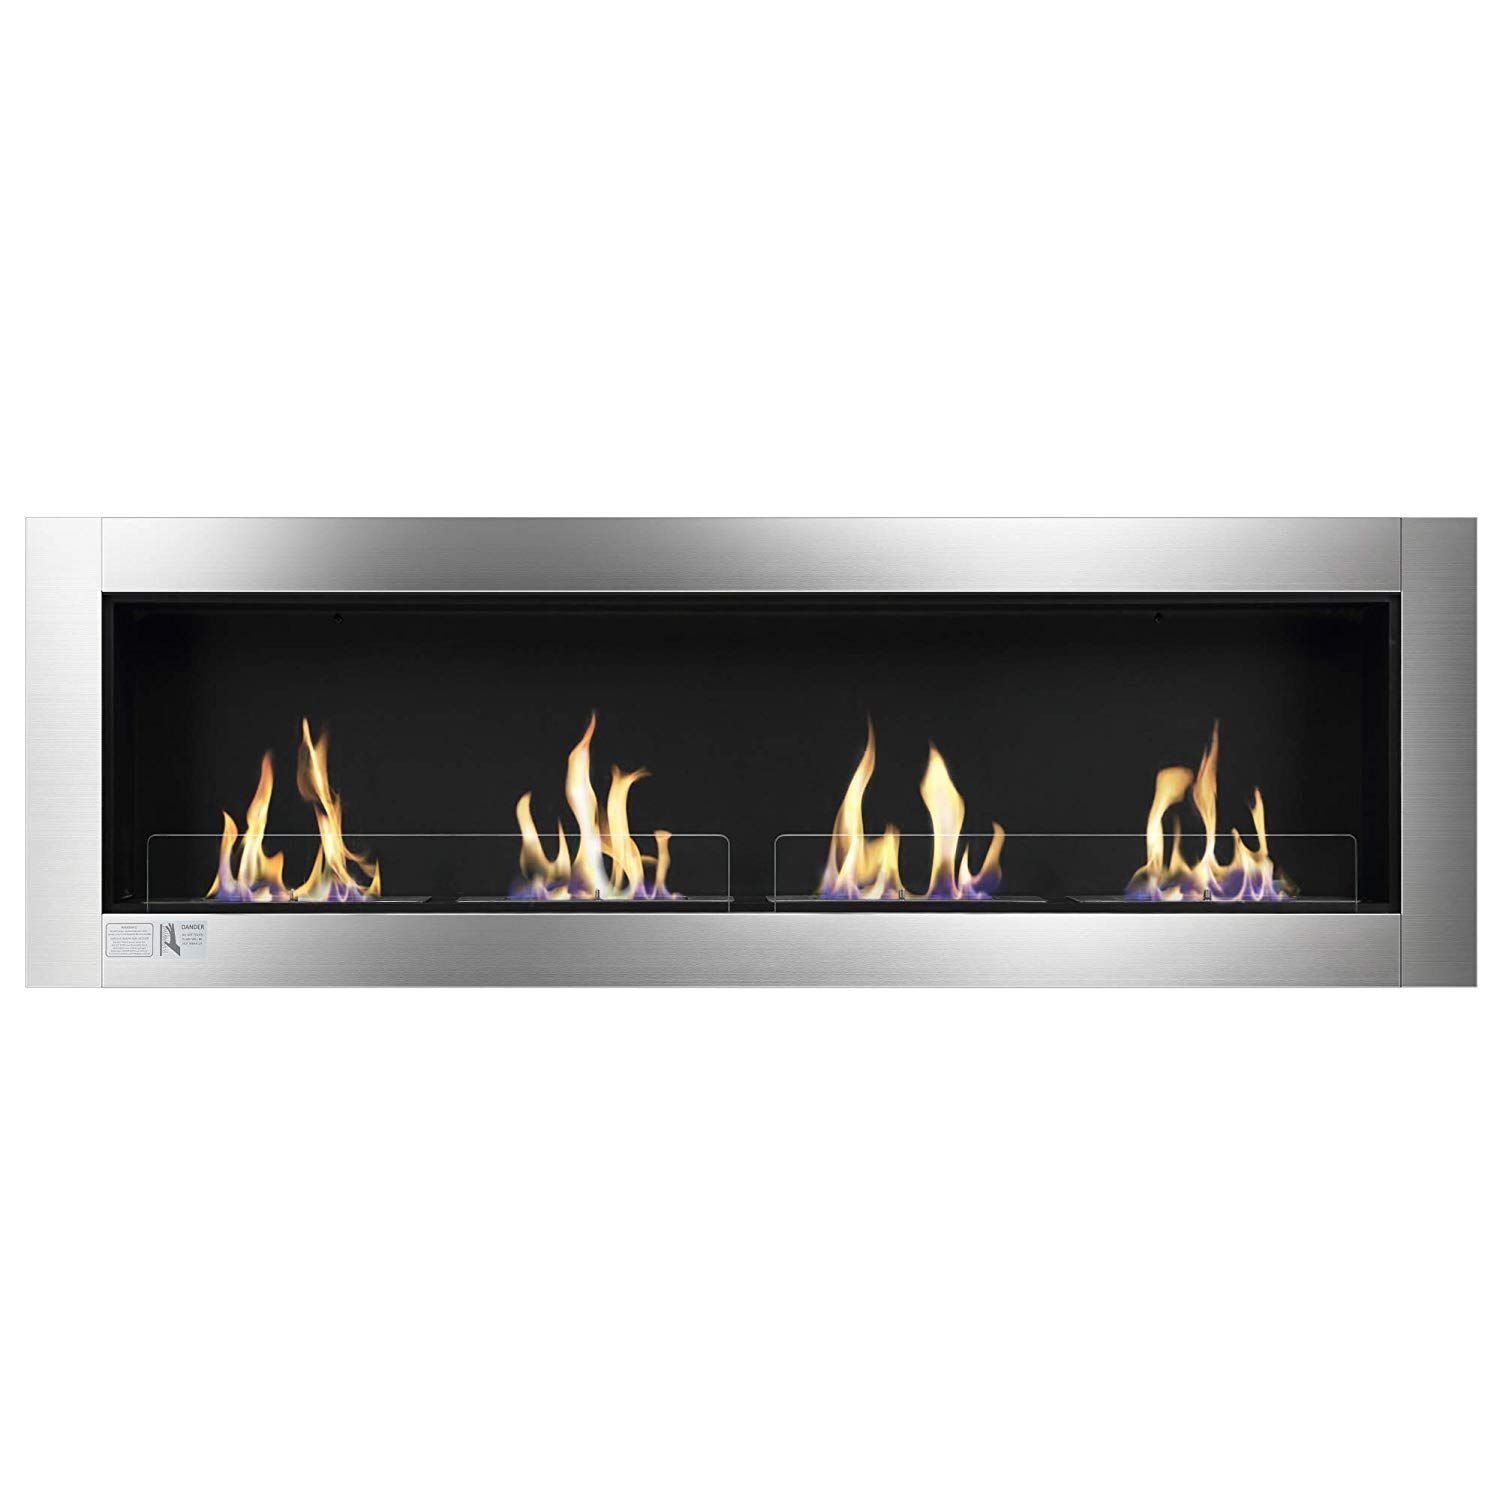 Amazon Com Xbeauty 70 Ventless Built In Recessed Bio Ethanol Fireplace With Safety Glass Indoor Ethanol Fireplace Wall Mounted Fireplace Bioethanol Fireplace